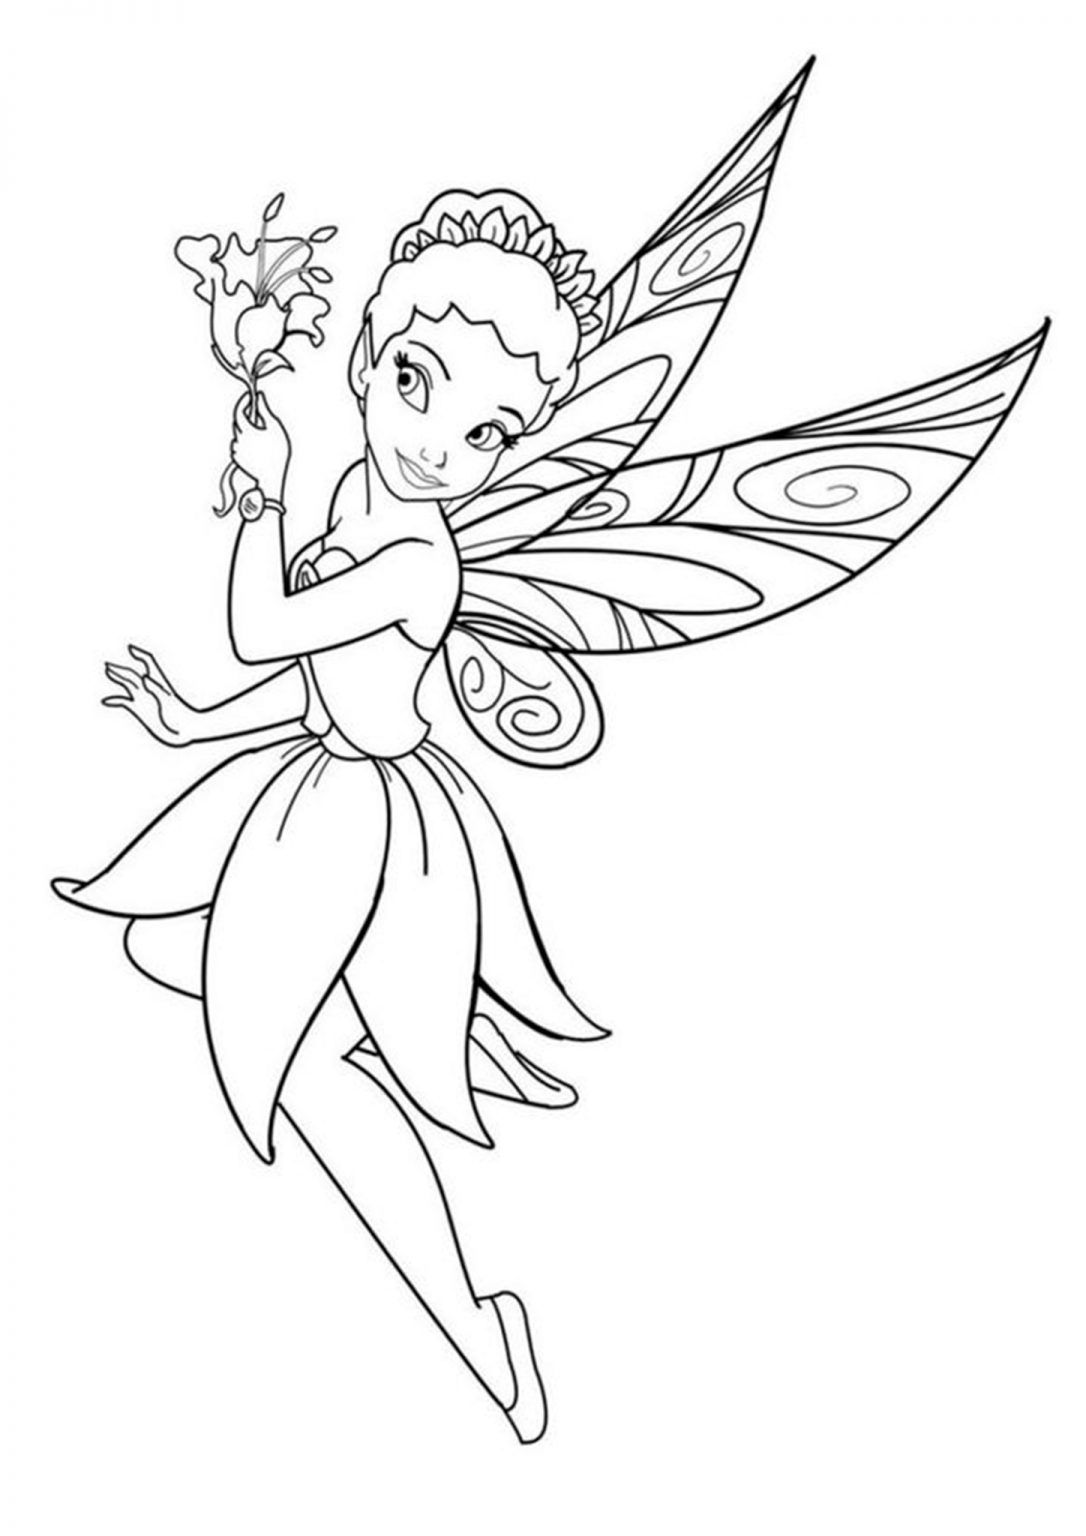 Free Easy To Print Fairy Coloring Pages Fairy Coloring Pages Fairy Drawings Tinkerbell Coloring Pages